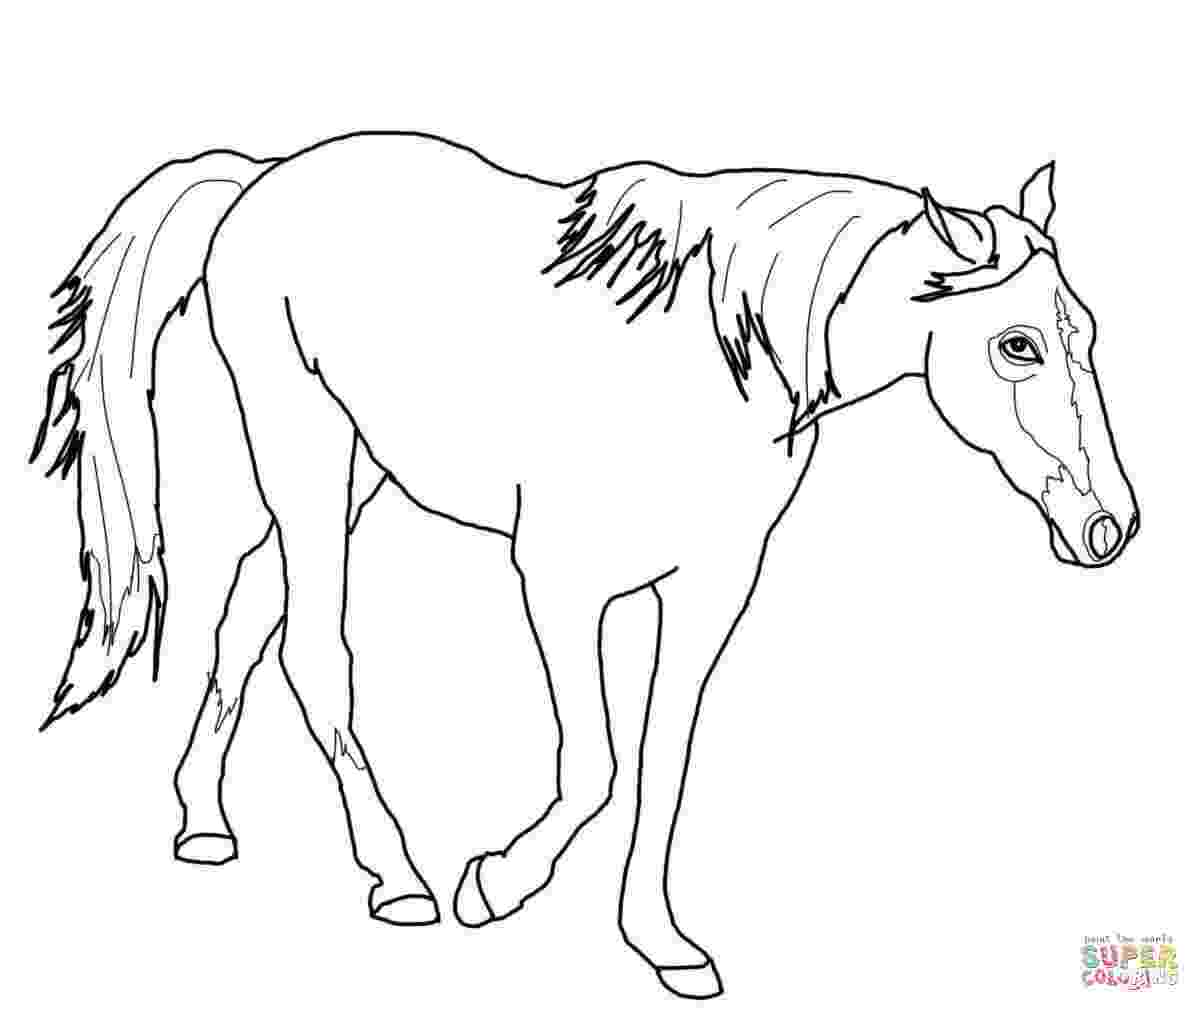 coloring pics of horses coloring pages of horses printable free coloring sheets horses pics coloring of